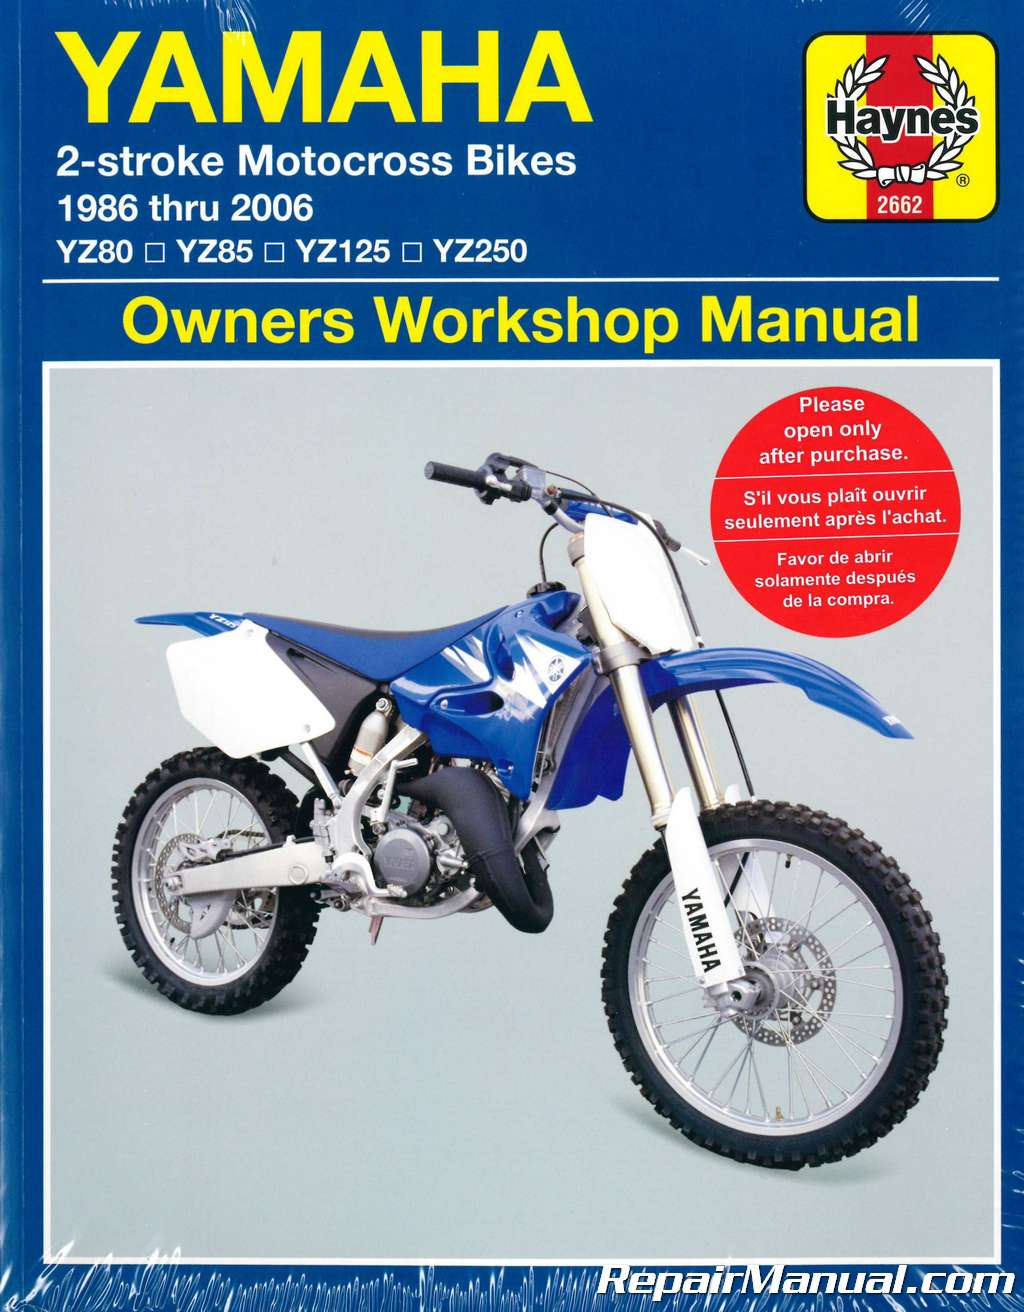 1986-2006 Yamaha YZ80 YZ85 YZ125 YZ250 Two Stroke Motorcycle Repair Manual